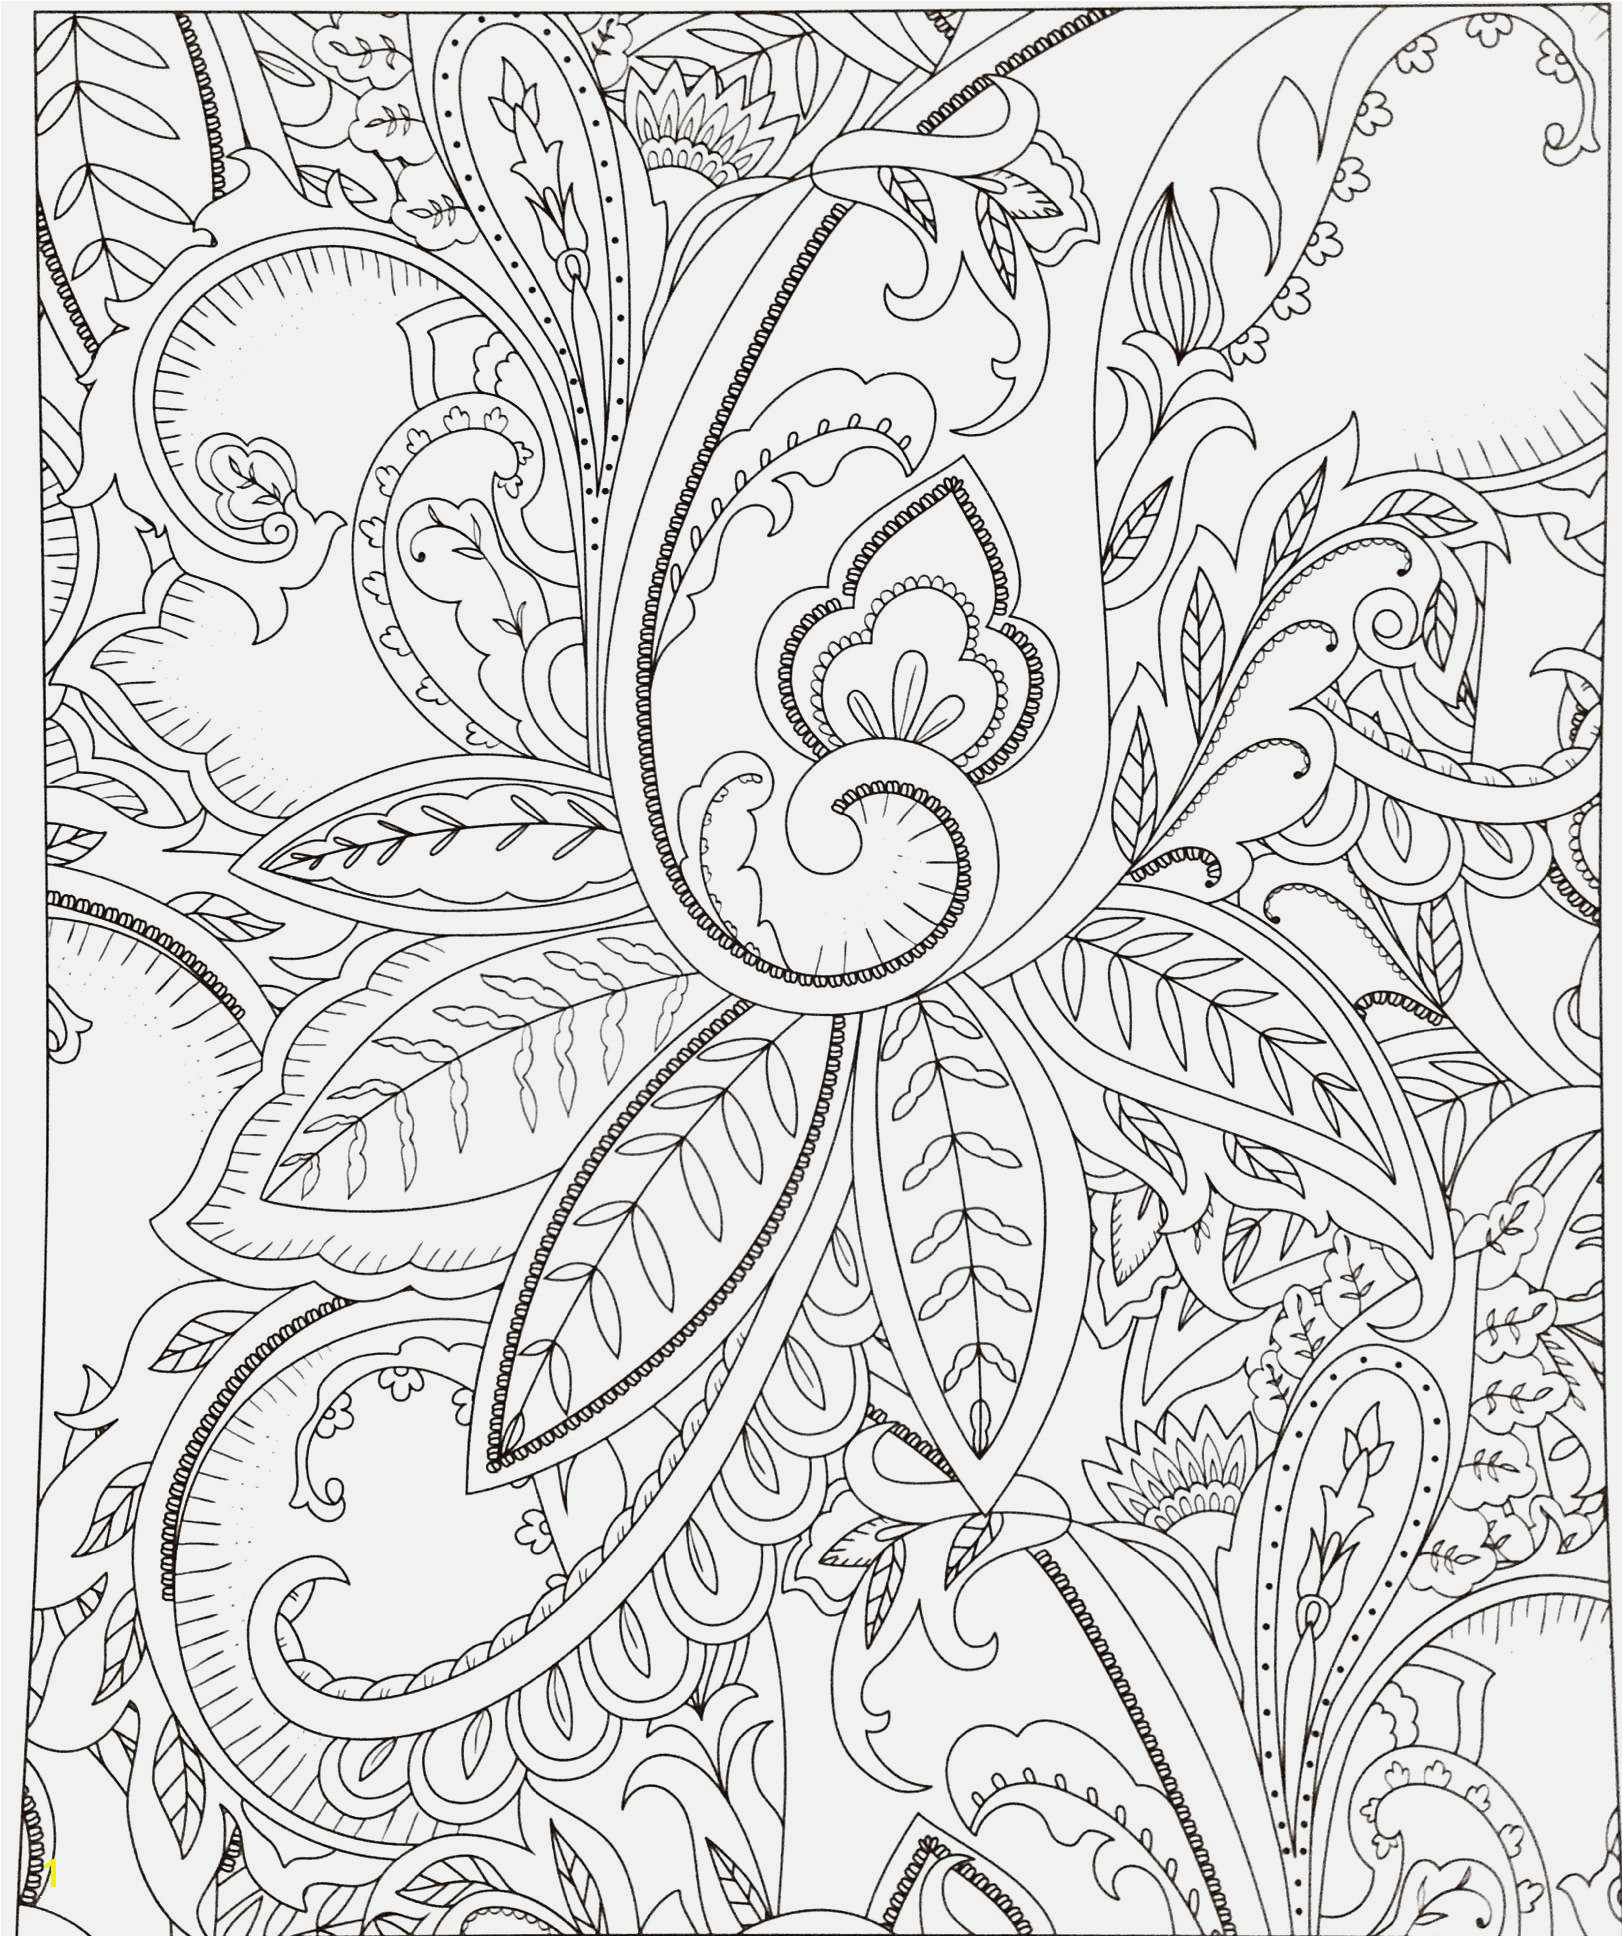 Difficult Coloring Pages Best Easy Very Difficult Coloring Pages Coloring Pages Coloring Pages